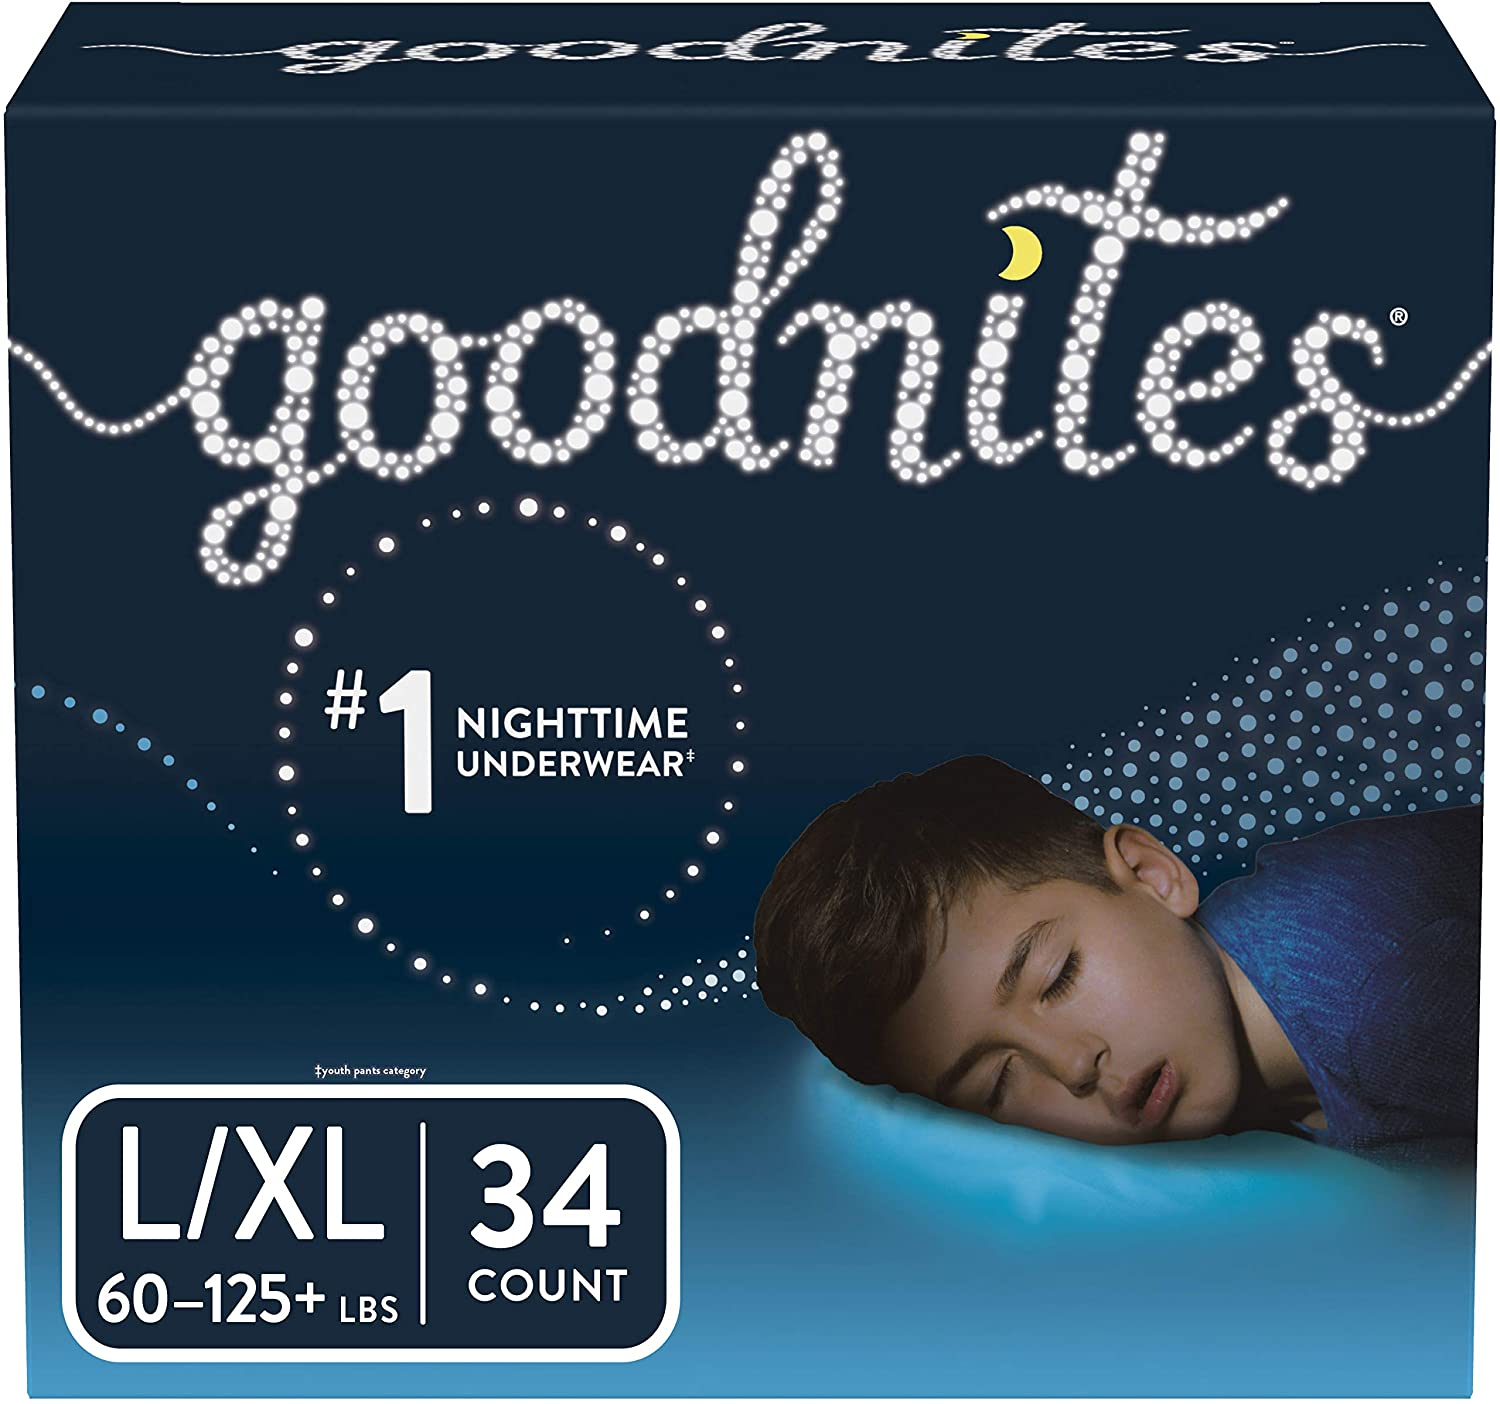 Large-scale sale Goodnites Bedwetting Underwear for Boys Large 34 Ct New color X-Large